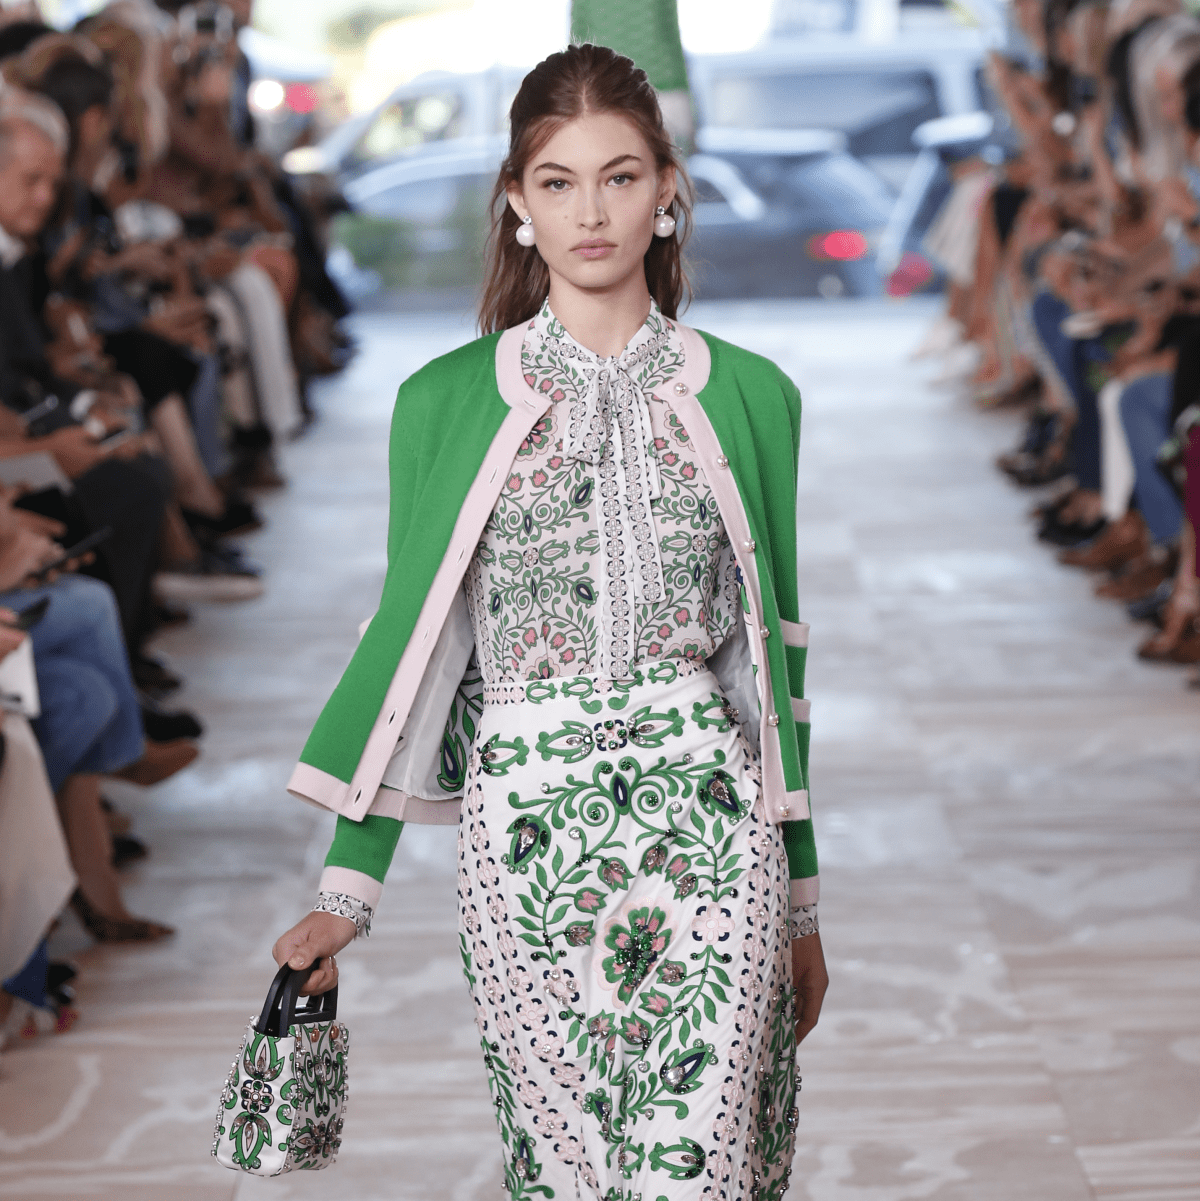 Tory Burch spring 2017 collection look 1